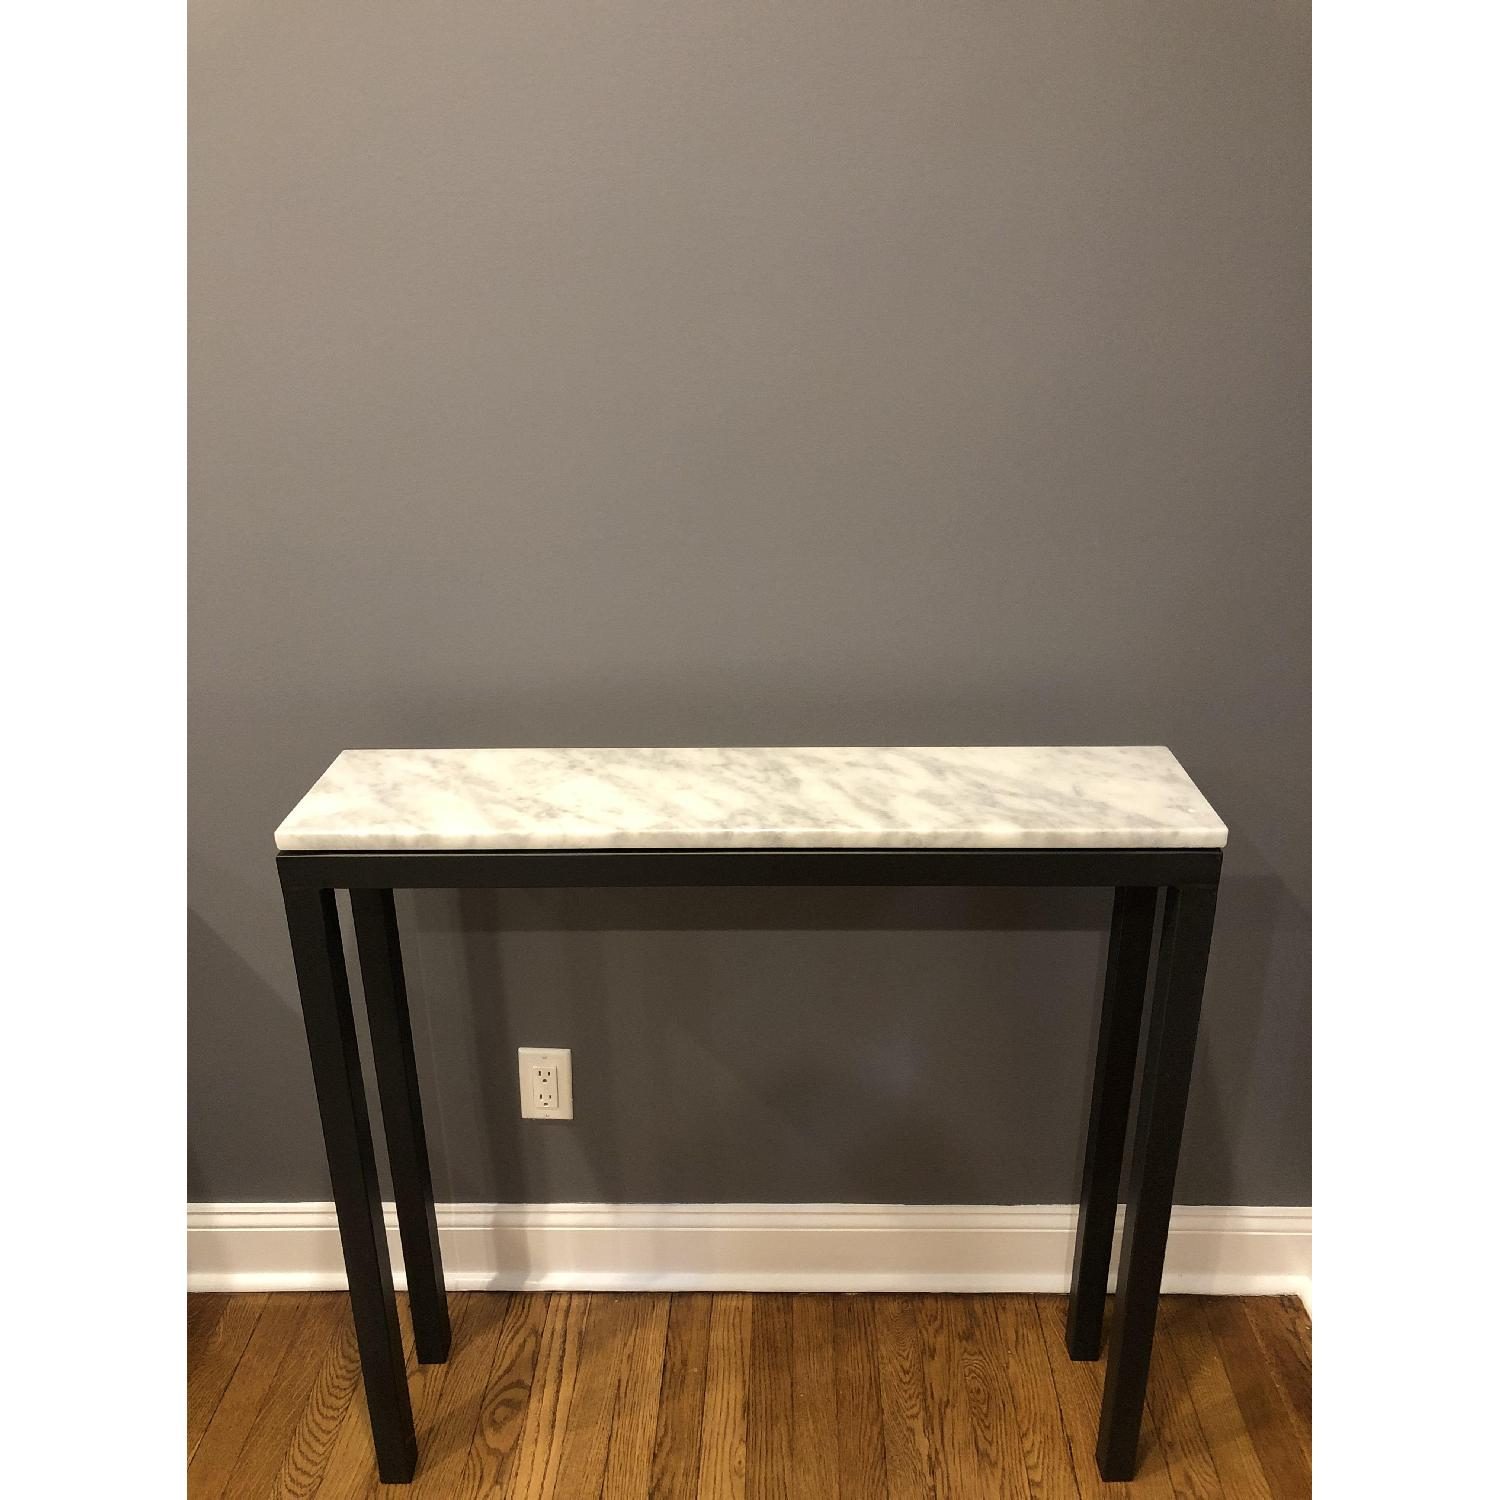 Room & Board Marble Top Console Table - image-2